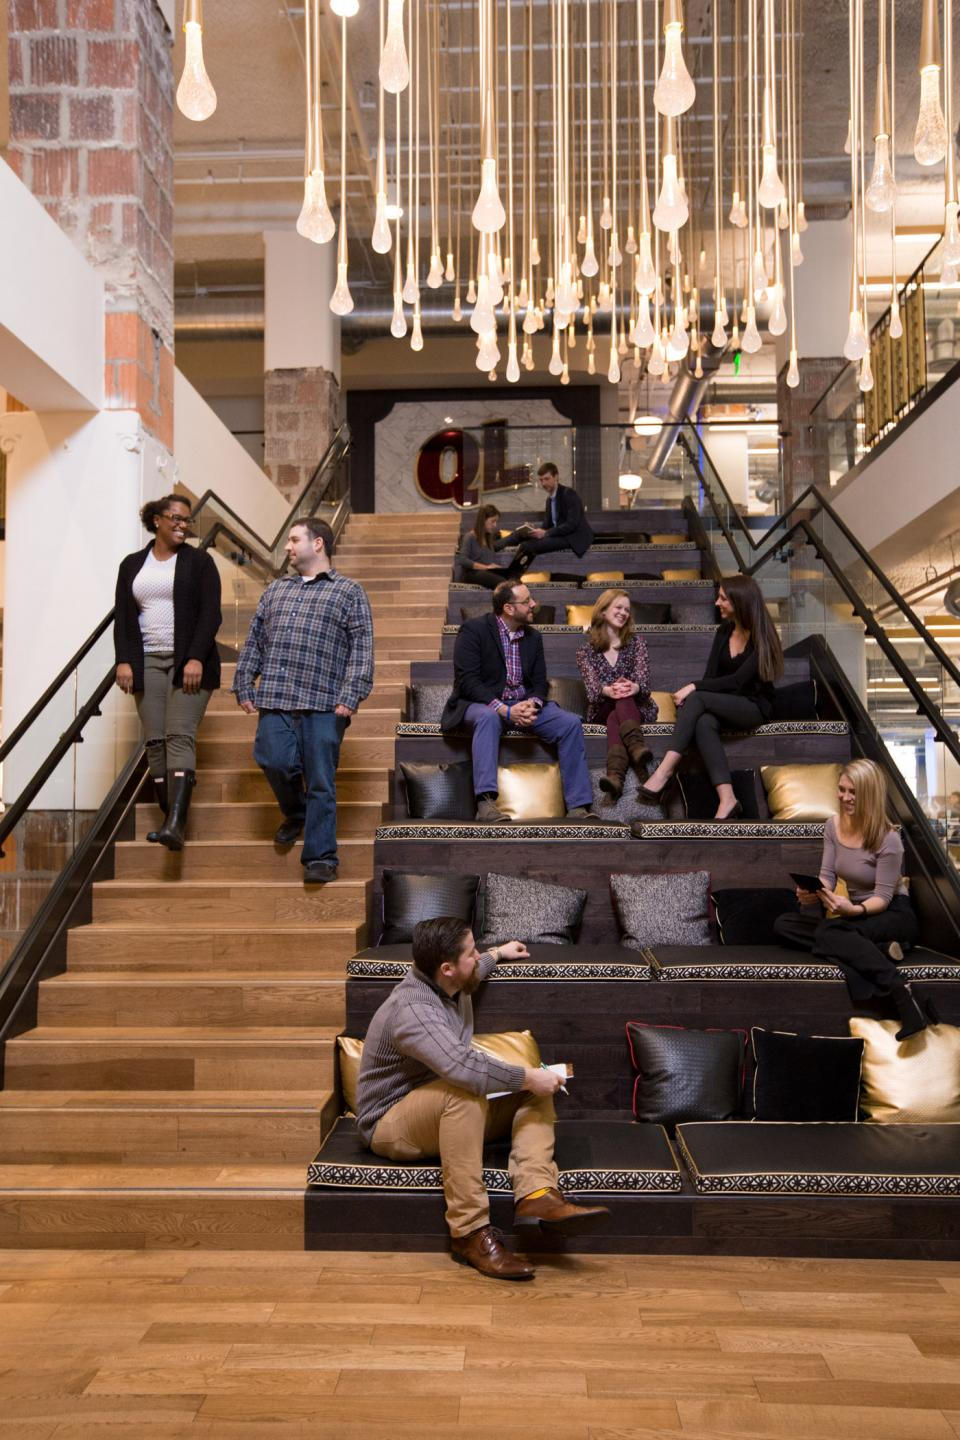 Team members meet on the stairs of Quicken Loans' newly renovated Cleveland office.